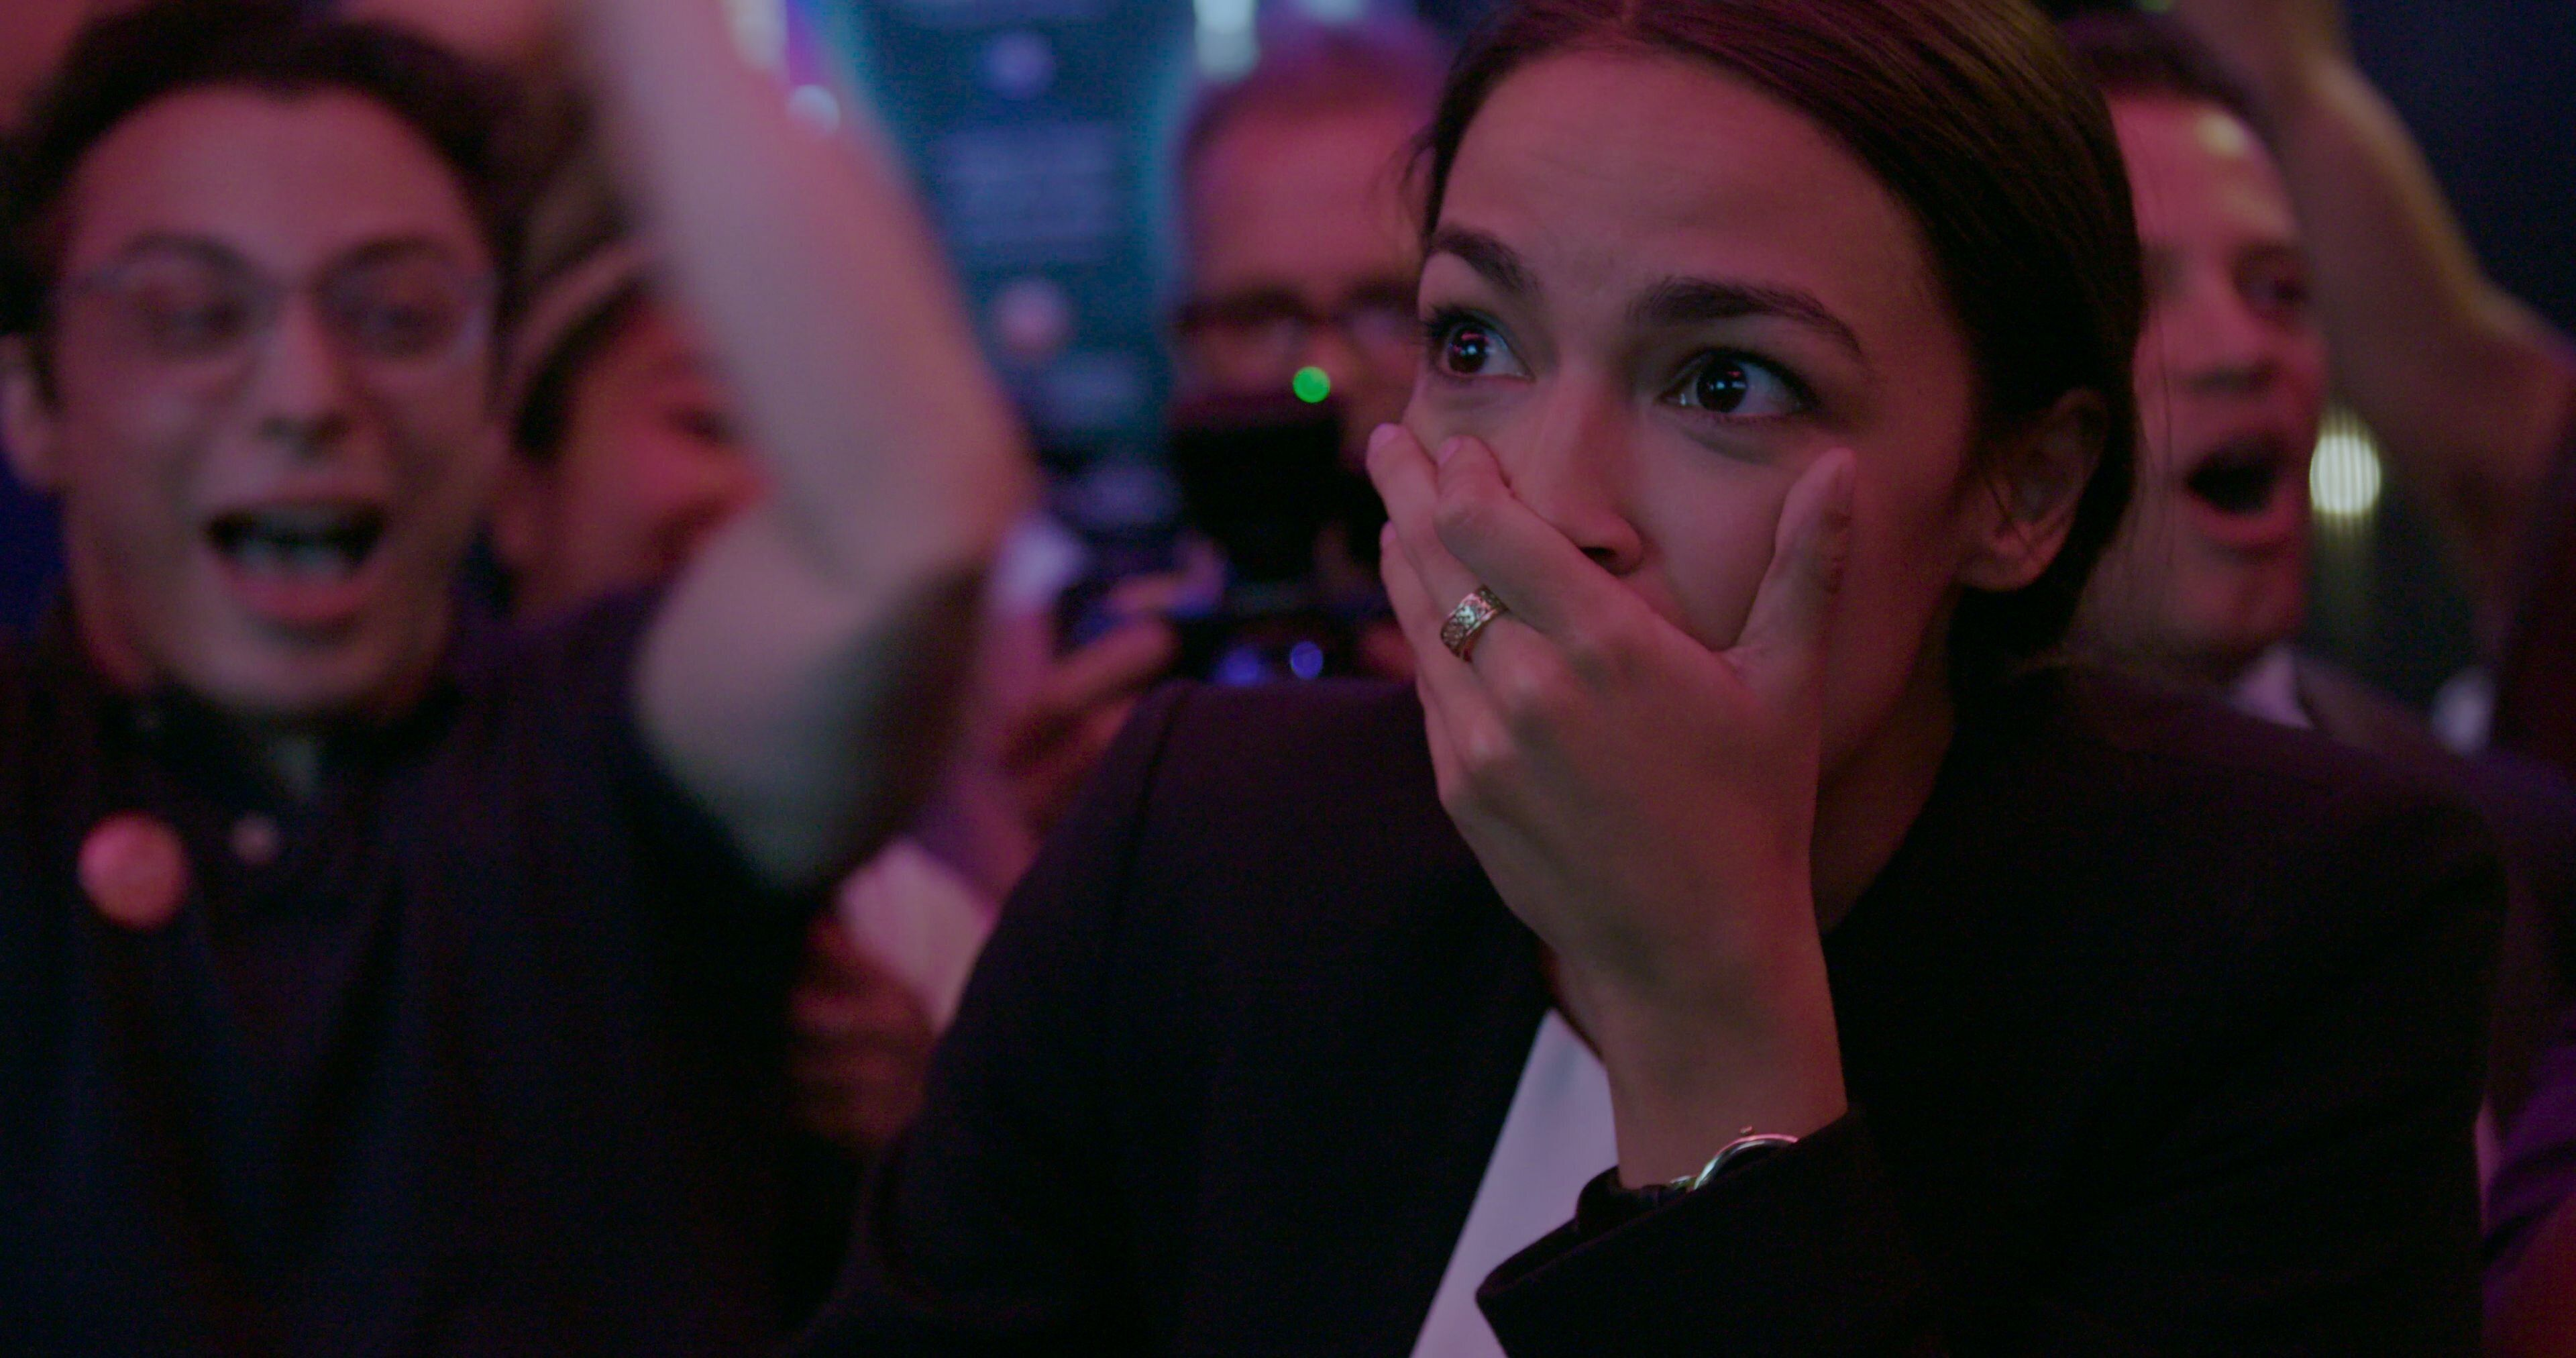 Alexandria Ocasio-Cortez looks on in shock as she wins the 2018 primary election in a still from Netflix's...